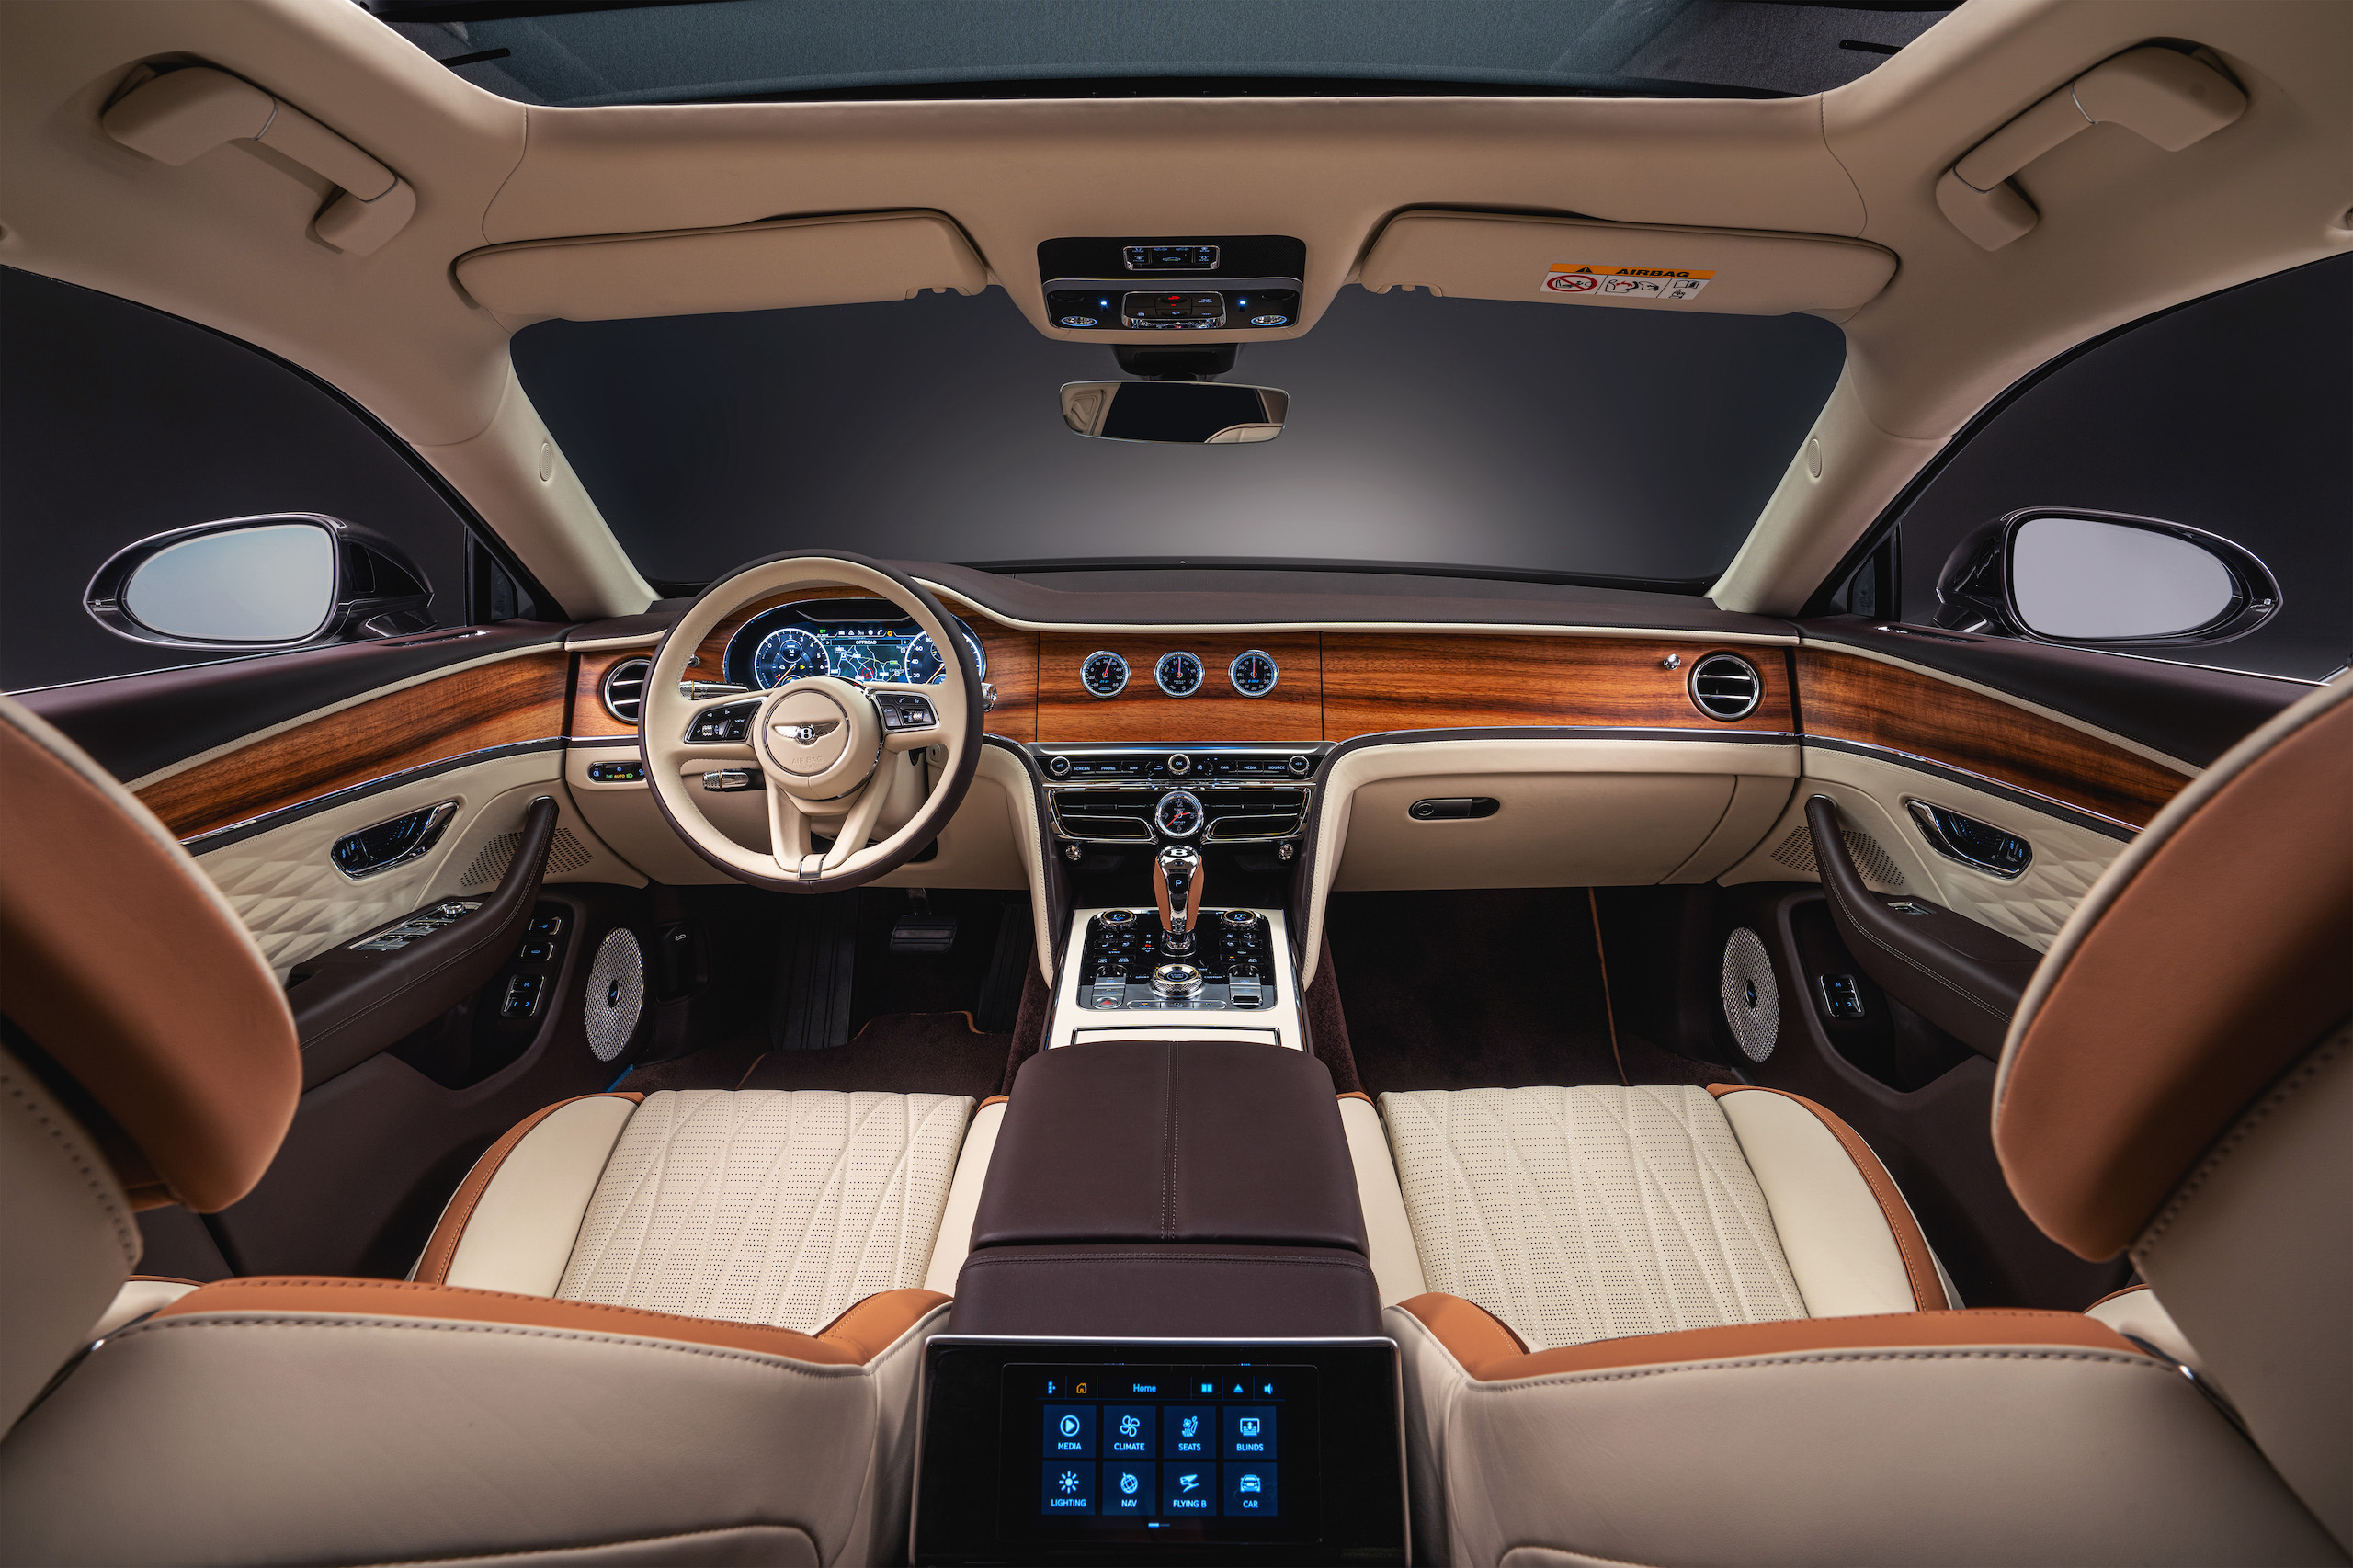 best of motors and tech this september 2021 - the bentley flying spur hybrid limousine